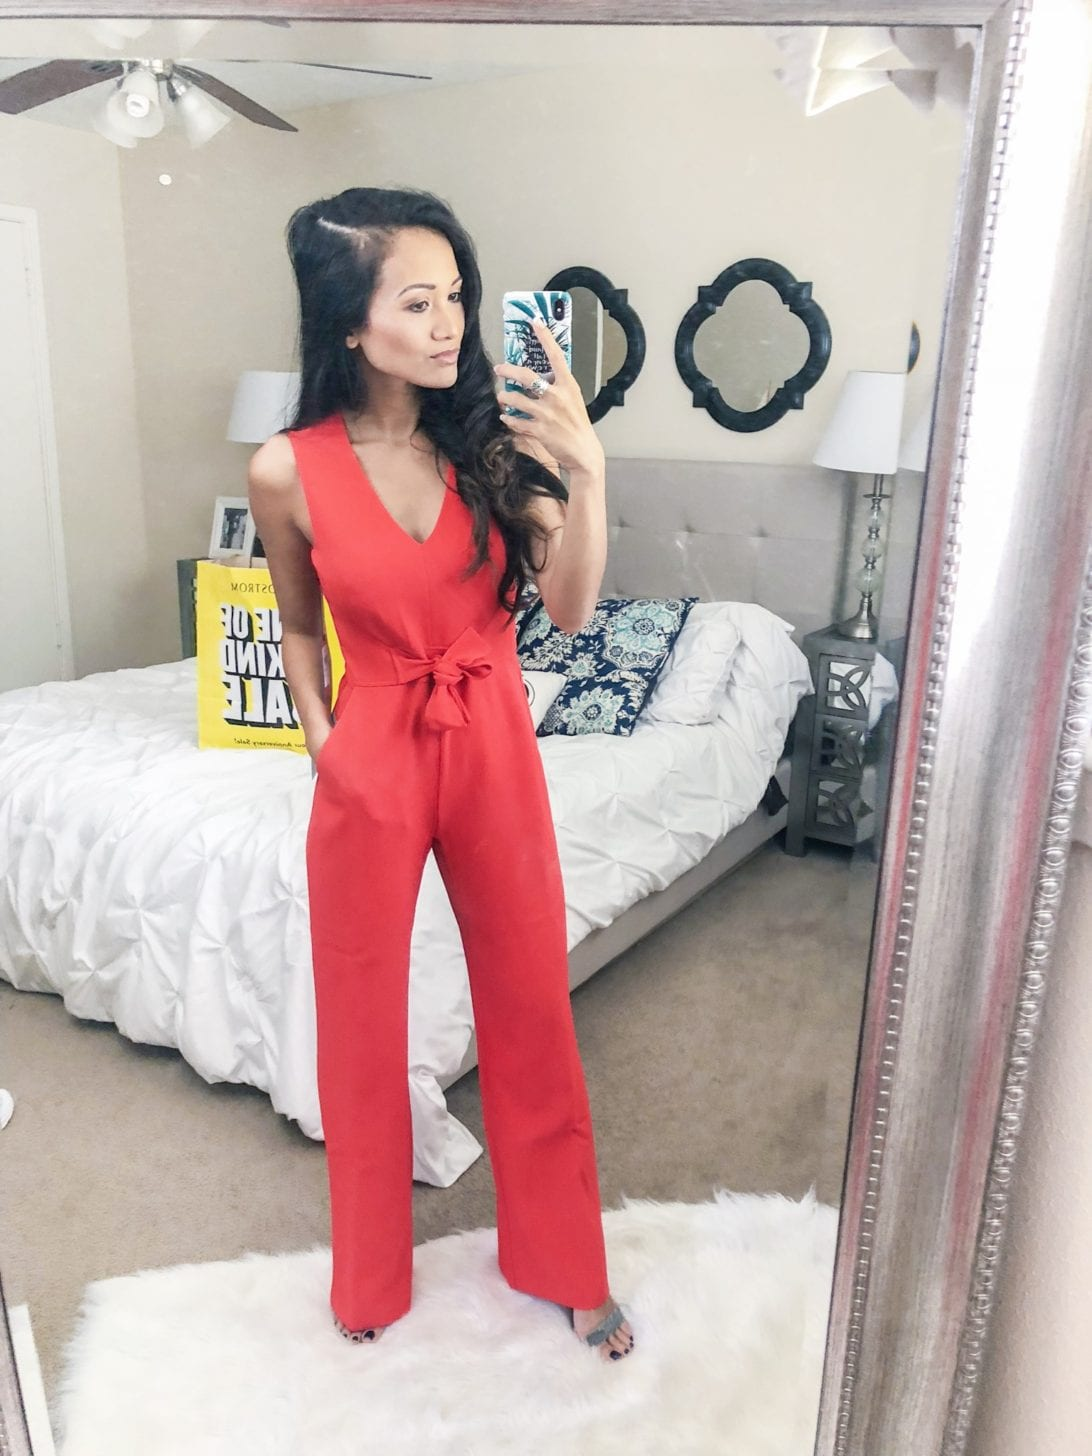 nordstrom anniversary sale, try-on session, love it or leave it, petite style, petite fashion, red jumpsuit